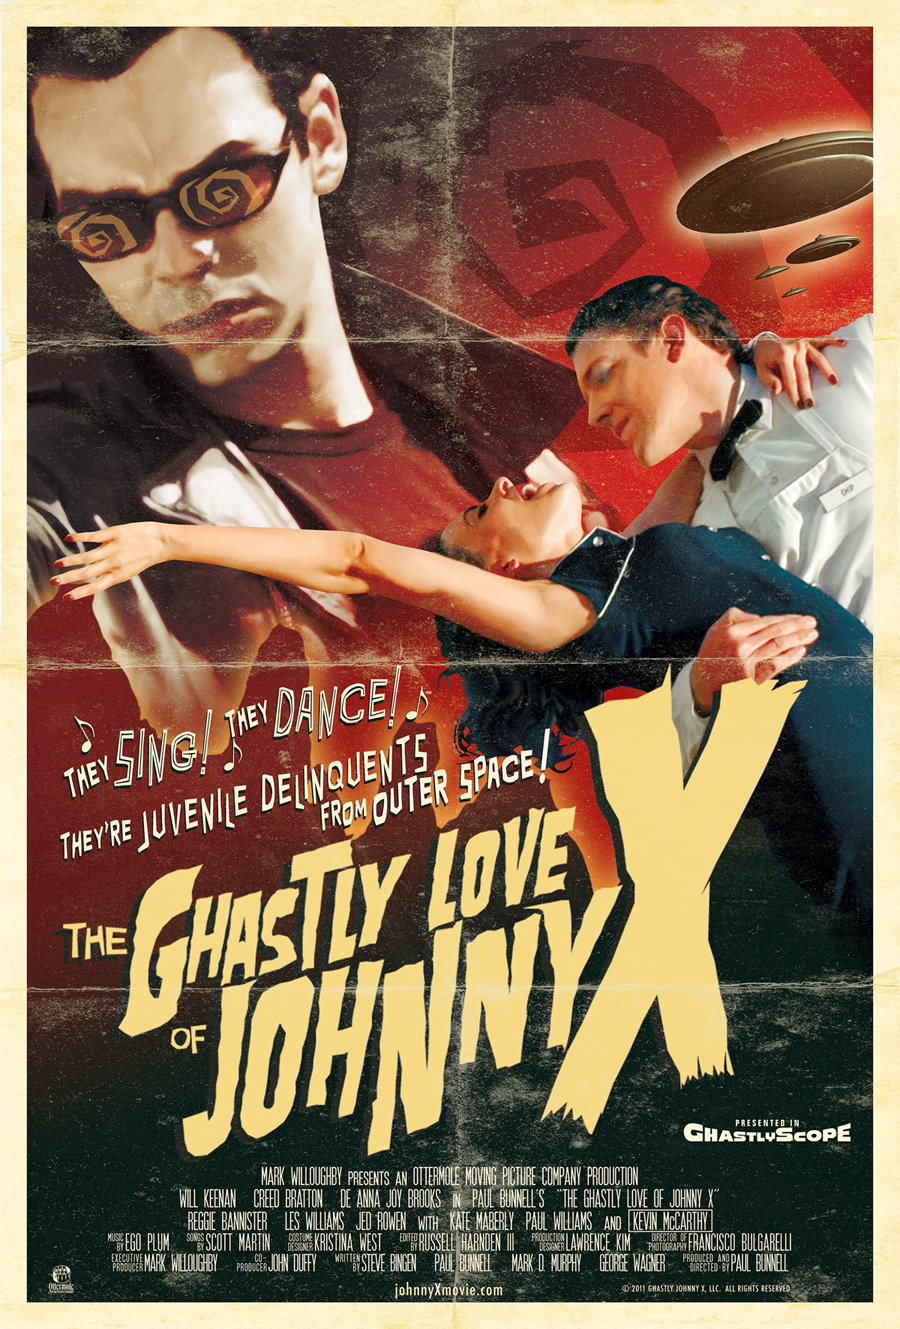 ghastly_love_of_johnny_x_poster_01.jpg